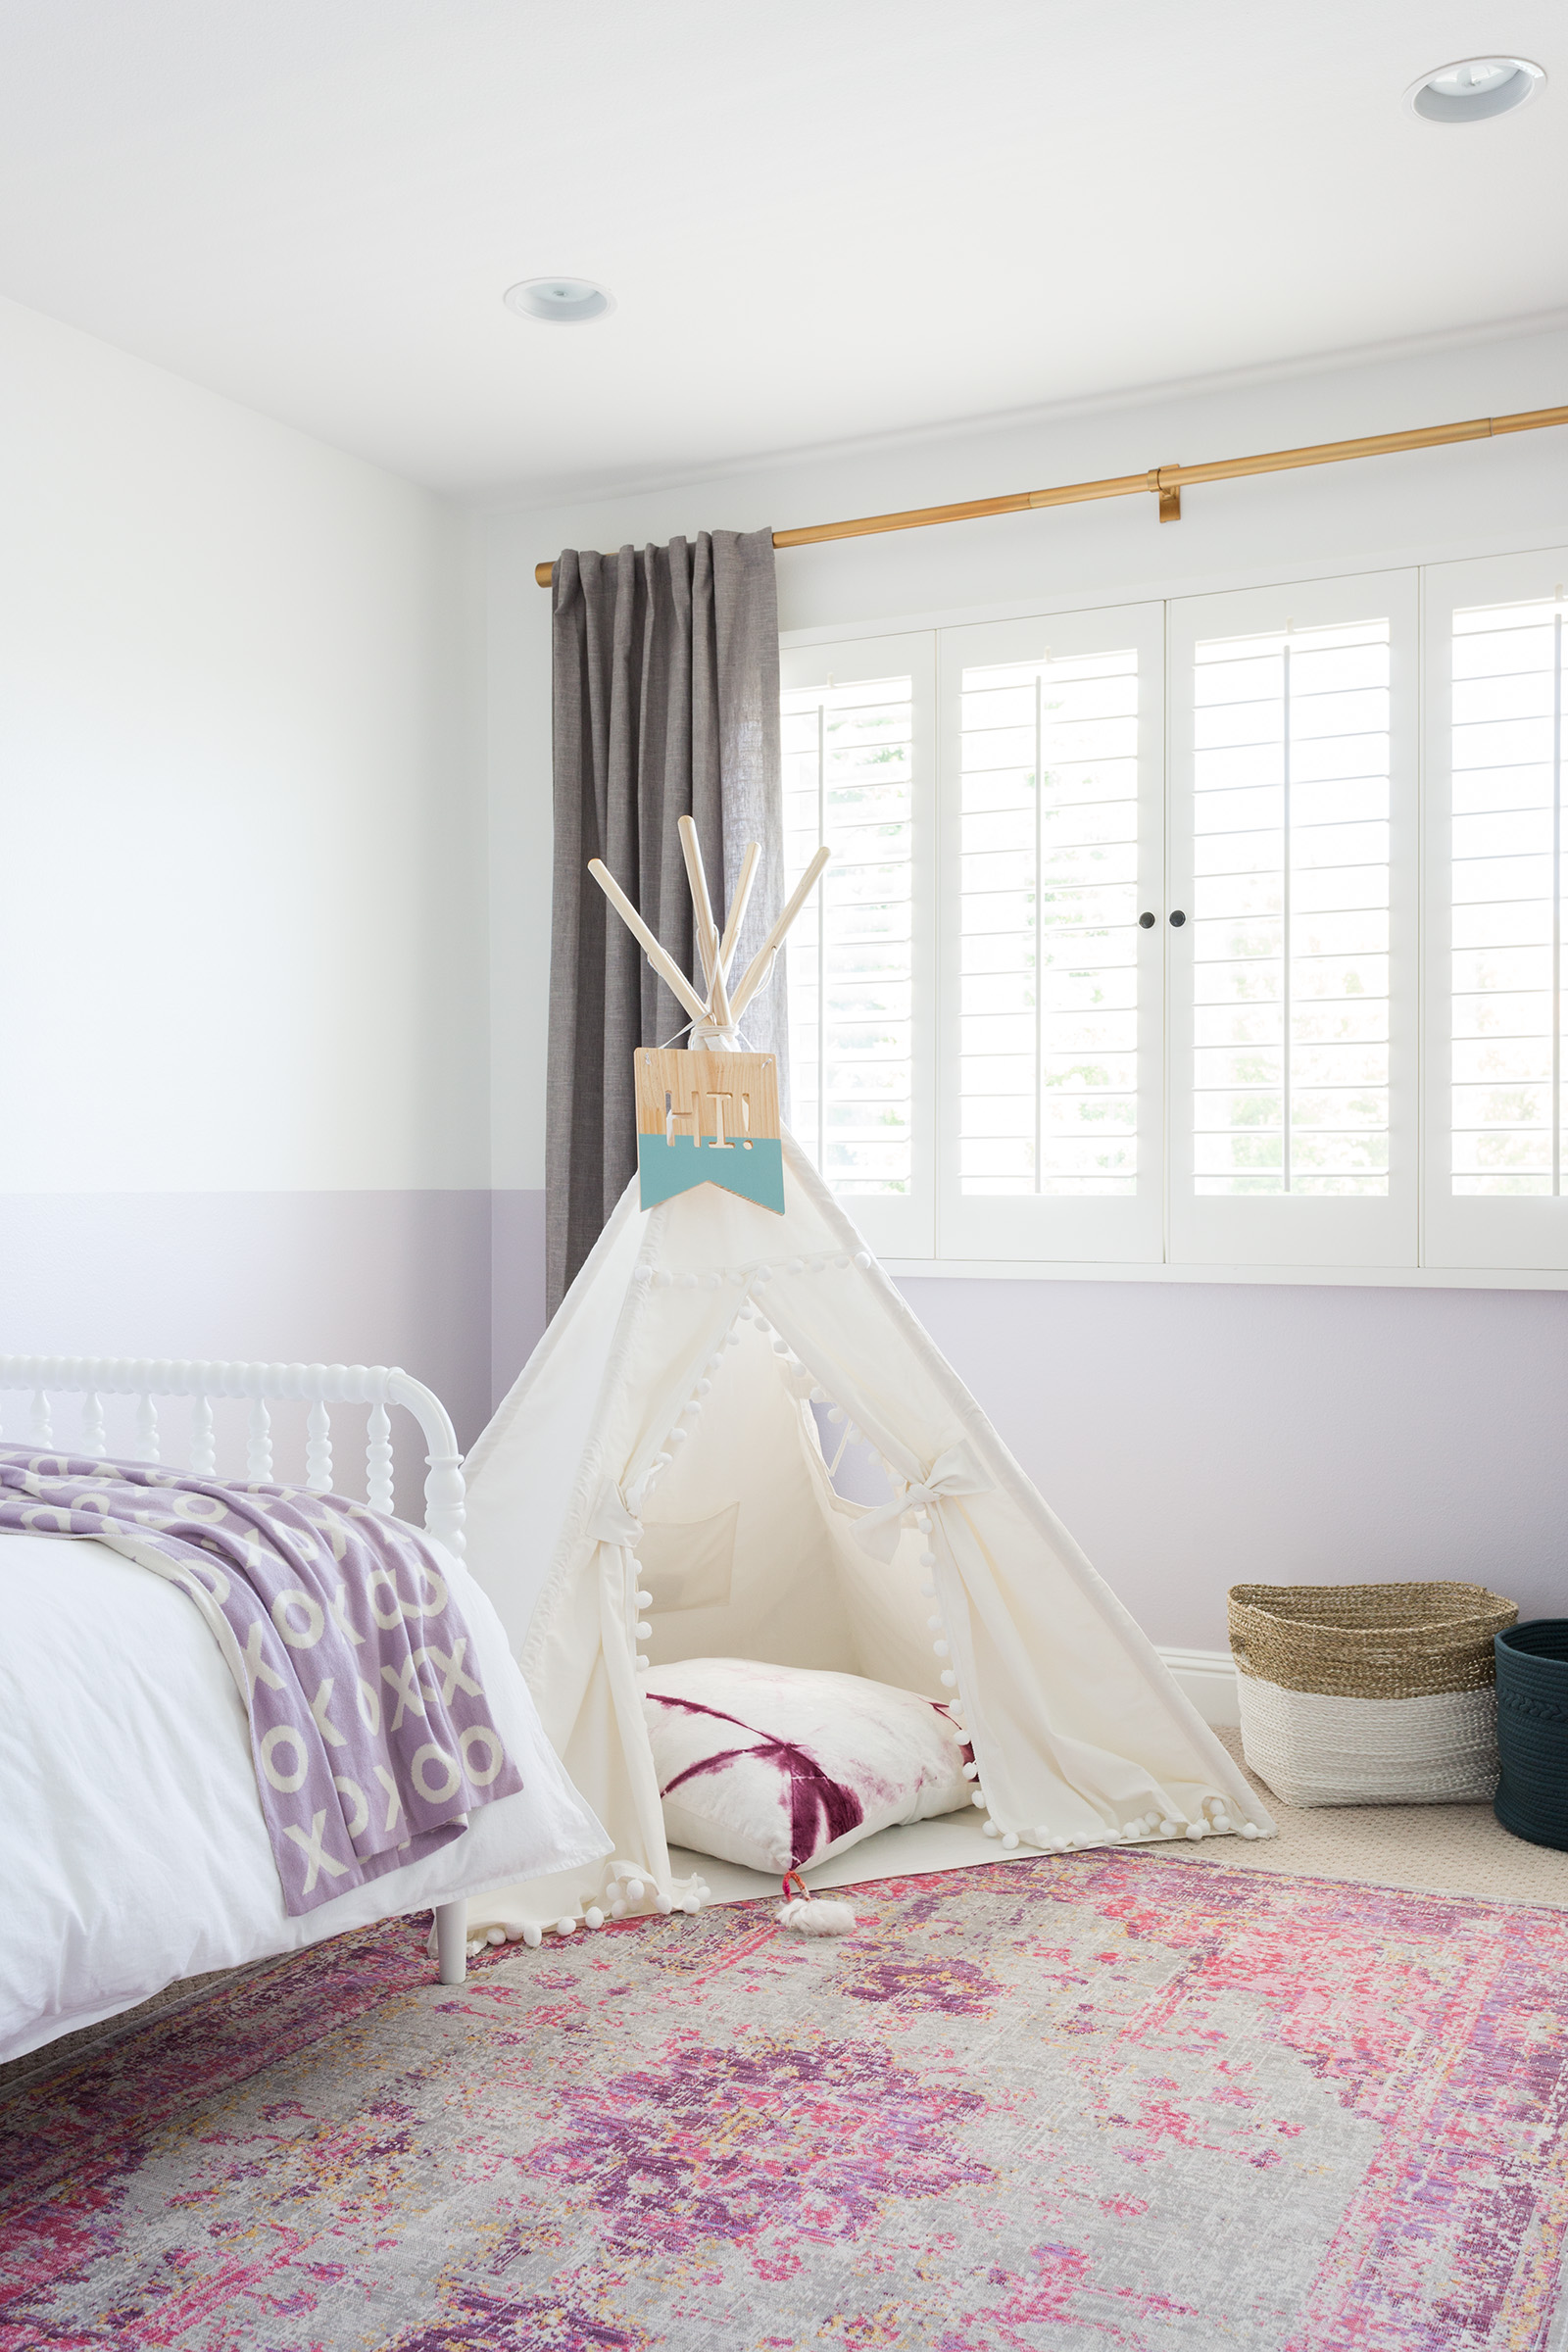 Where to save and where to splurge in kids spaces. California Traditional Project designed by Lindsey Brooke Design, photographed by Amy Bartlam